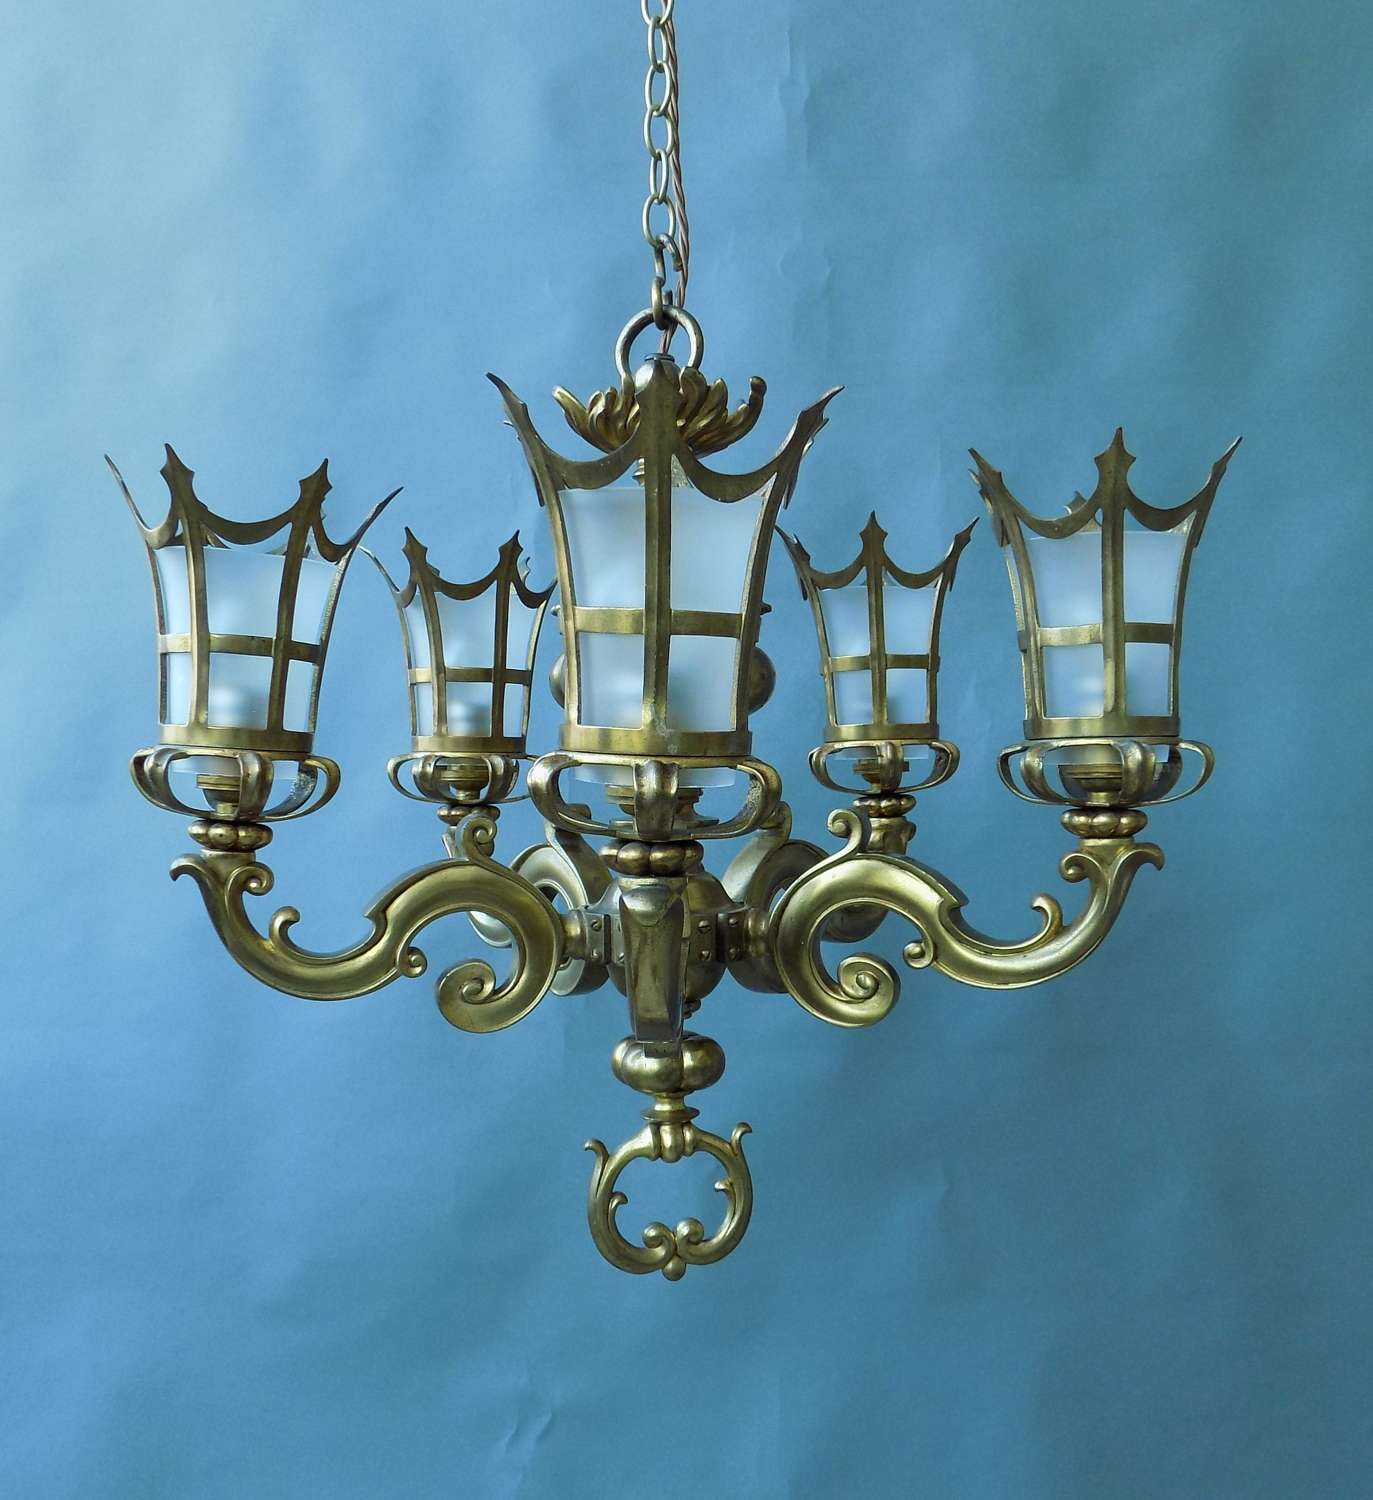 Solid Cast Brass Chandelier